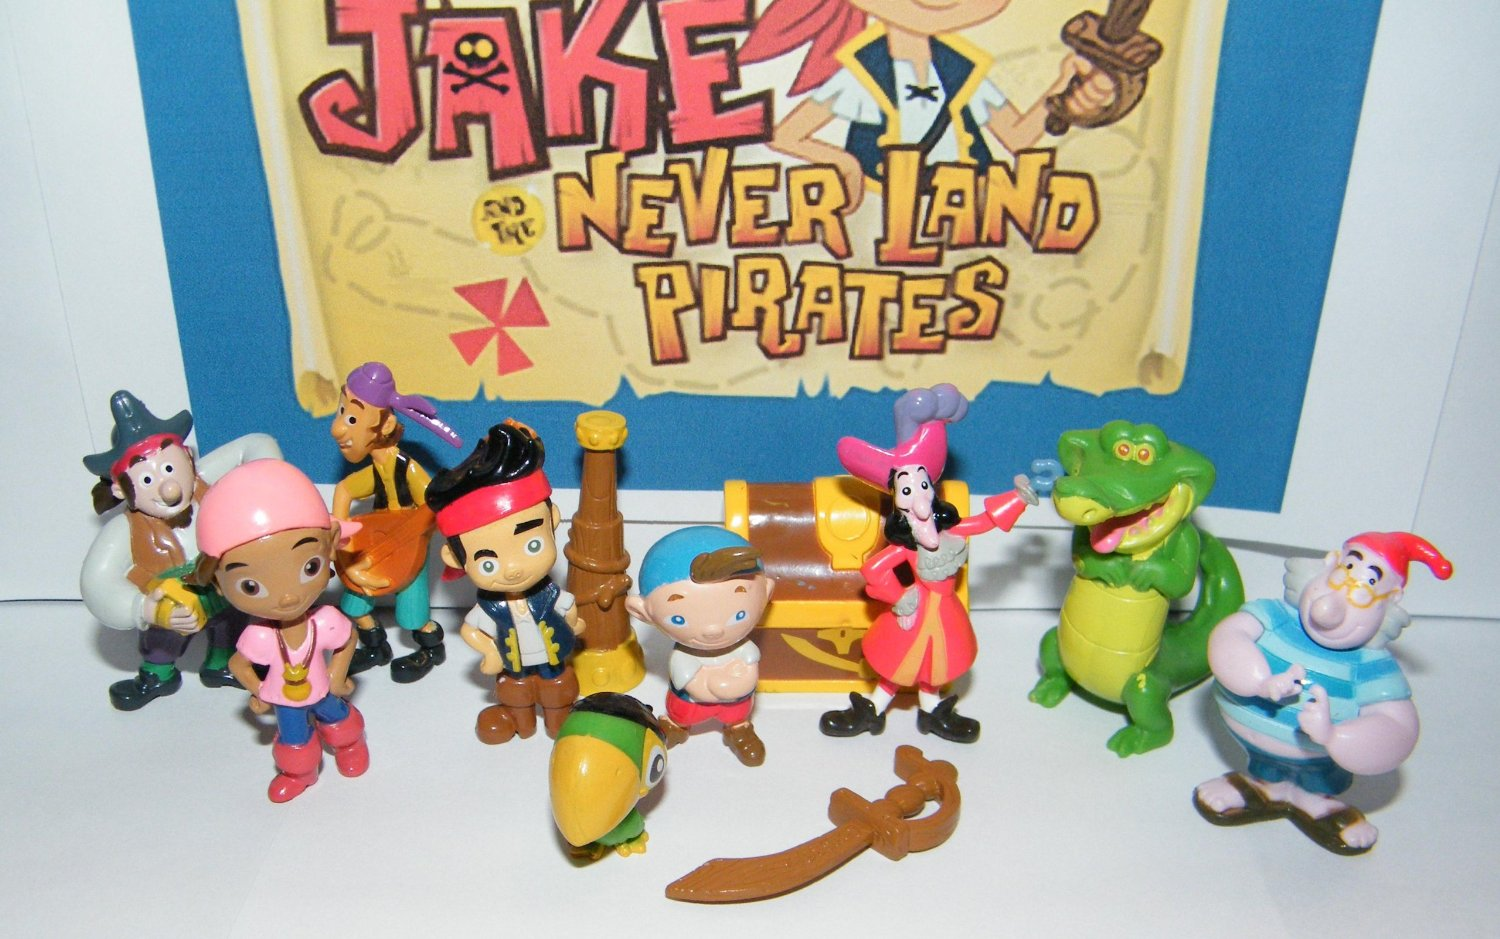 Disney Jake and The Never Land Pirates Deluxe Mini Figure Set Toy Playset of 12 with Jake, Hook, Crocodile, Treasure Chest and More!